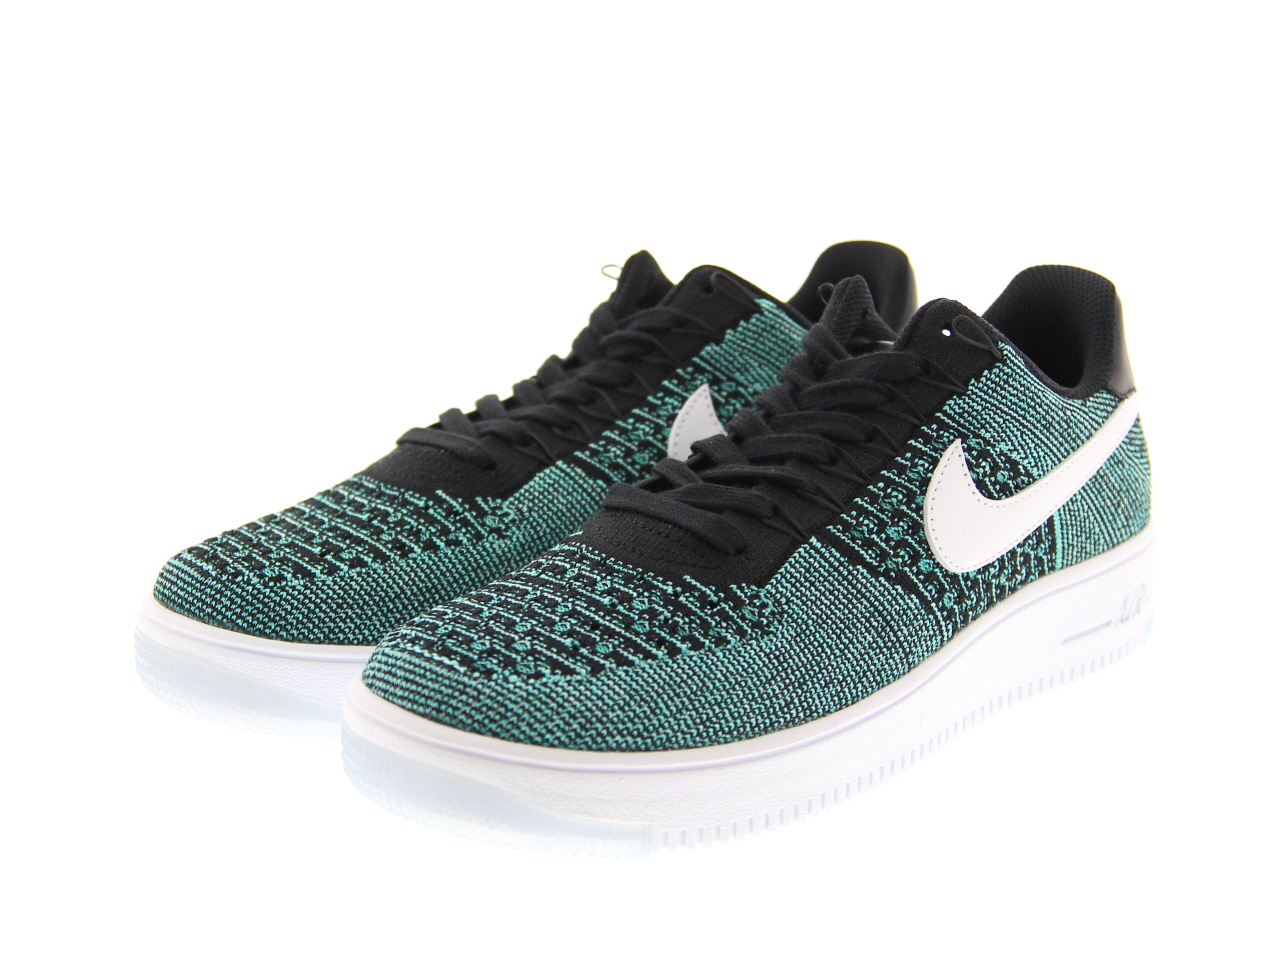 Nike Air Air Nike Force 1 Flyknit Low marrón Christmas 991cfe